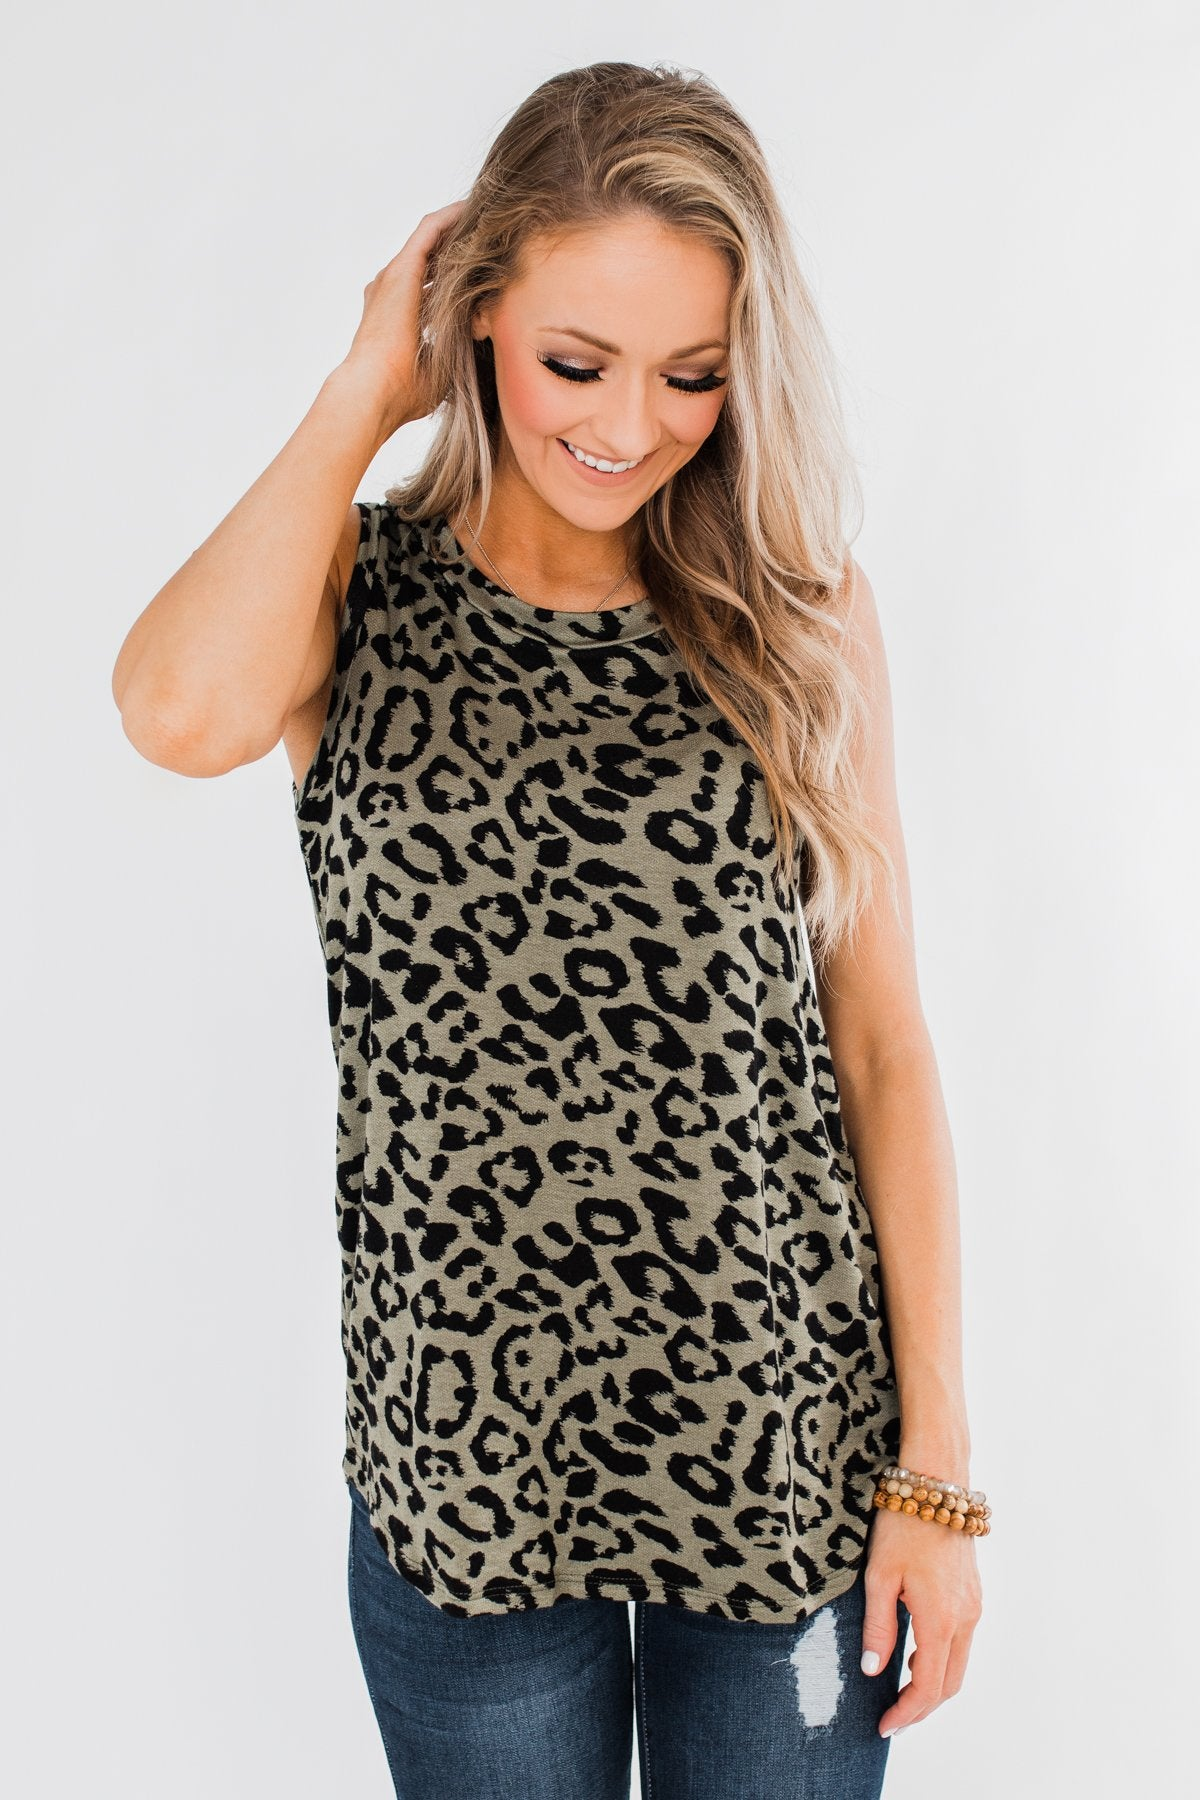 A Wild Idea Leopard Tank Top- Green